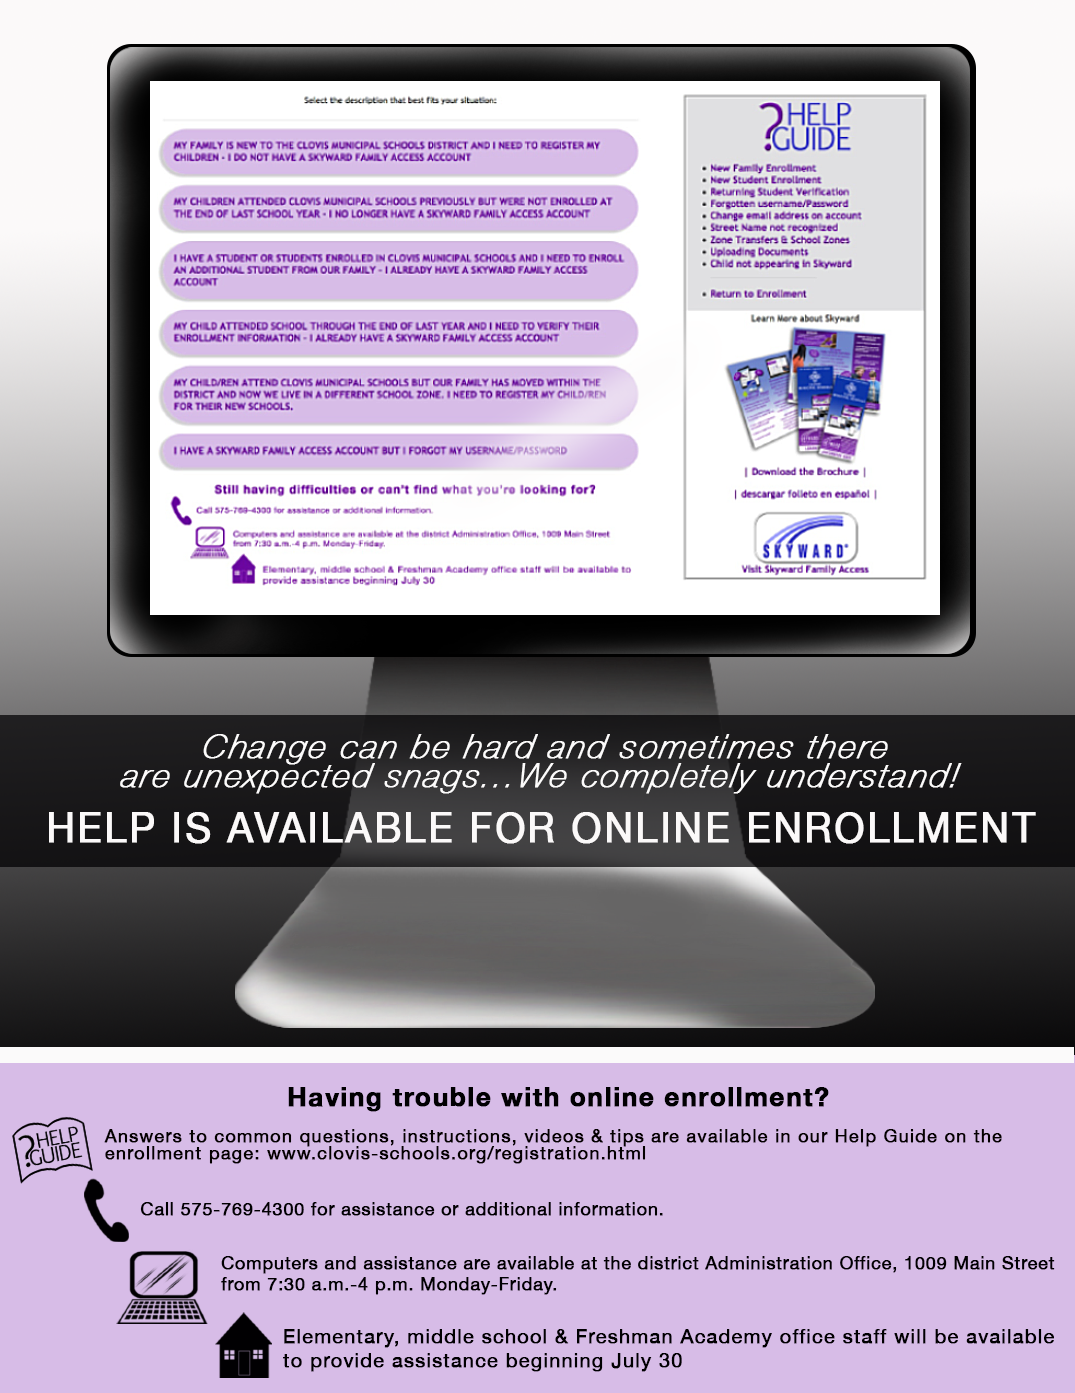 Image with text explaining different ways to access help with online enrollment